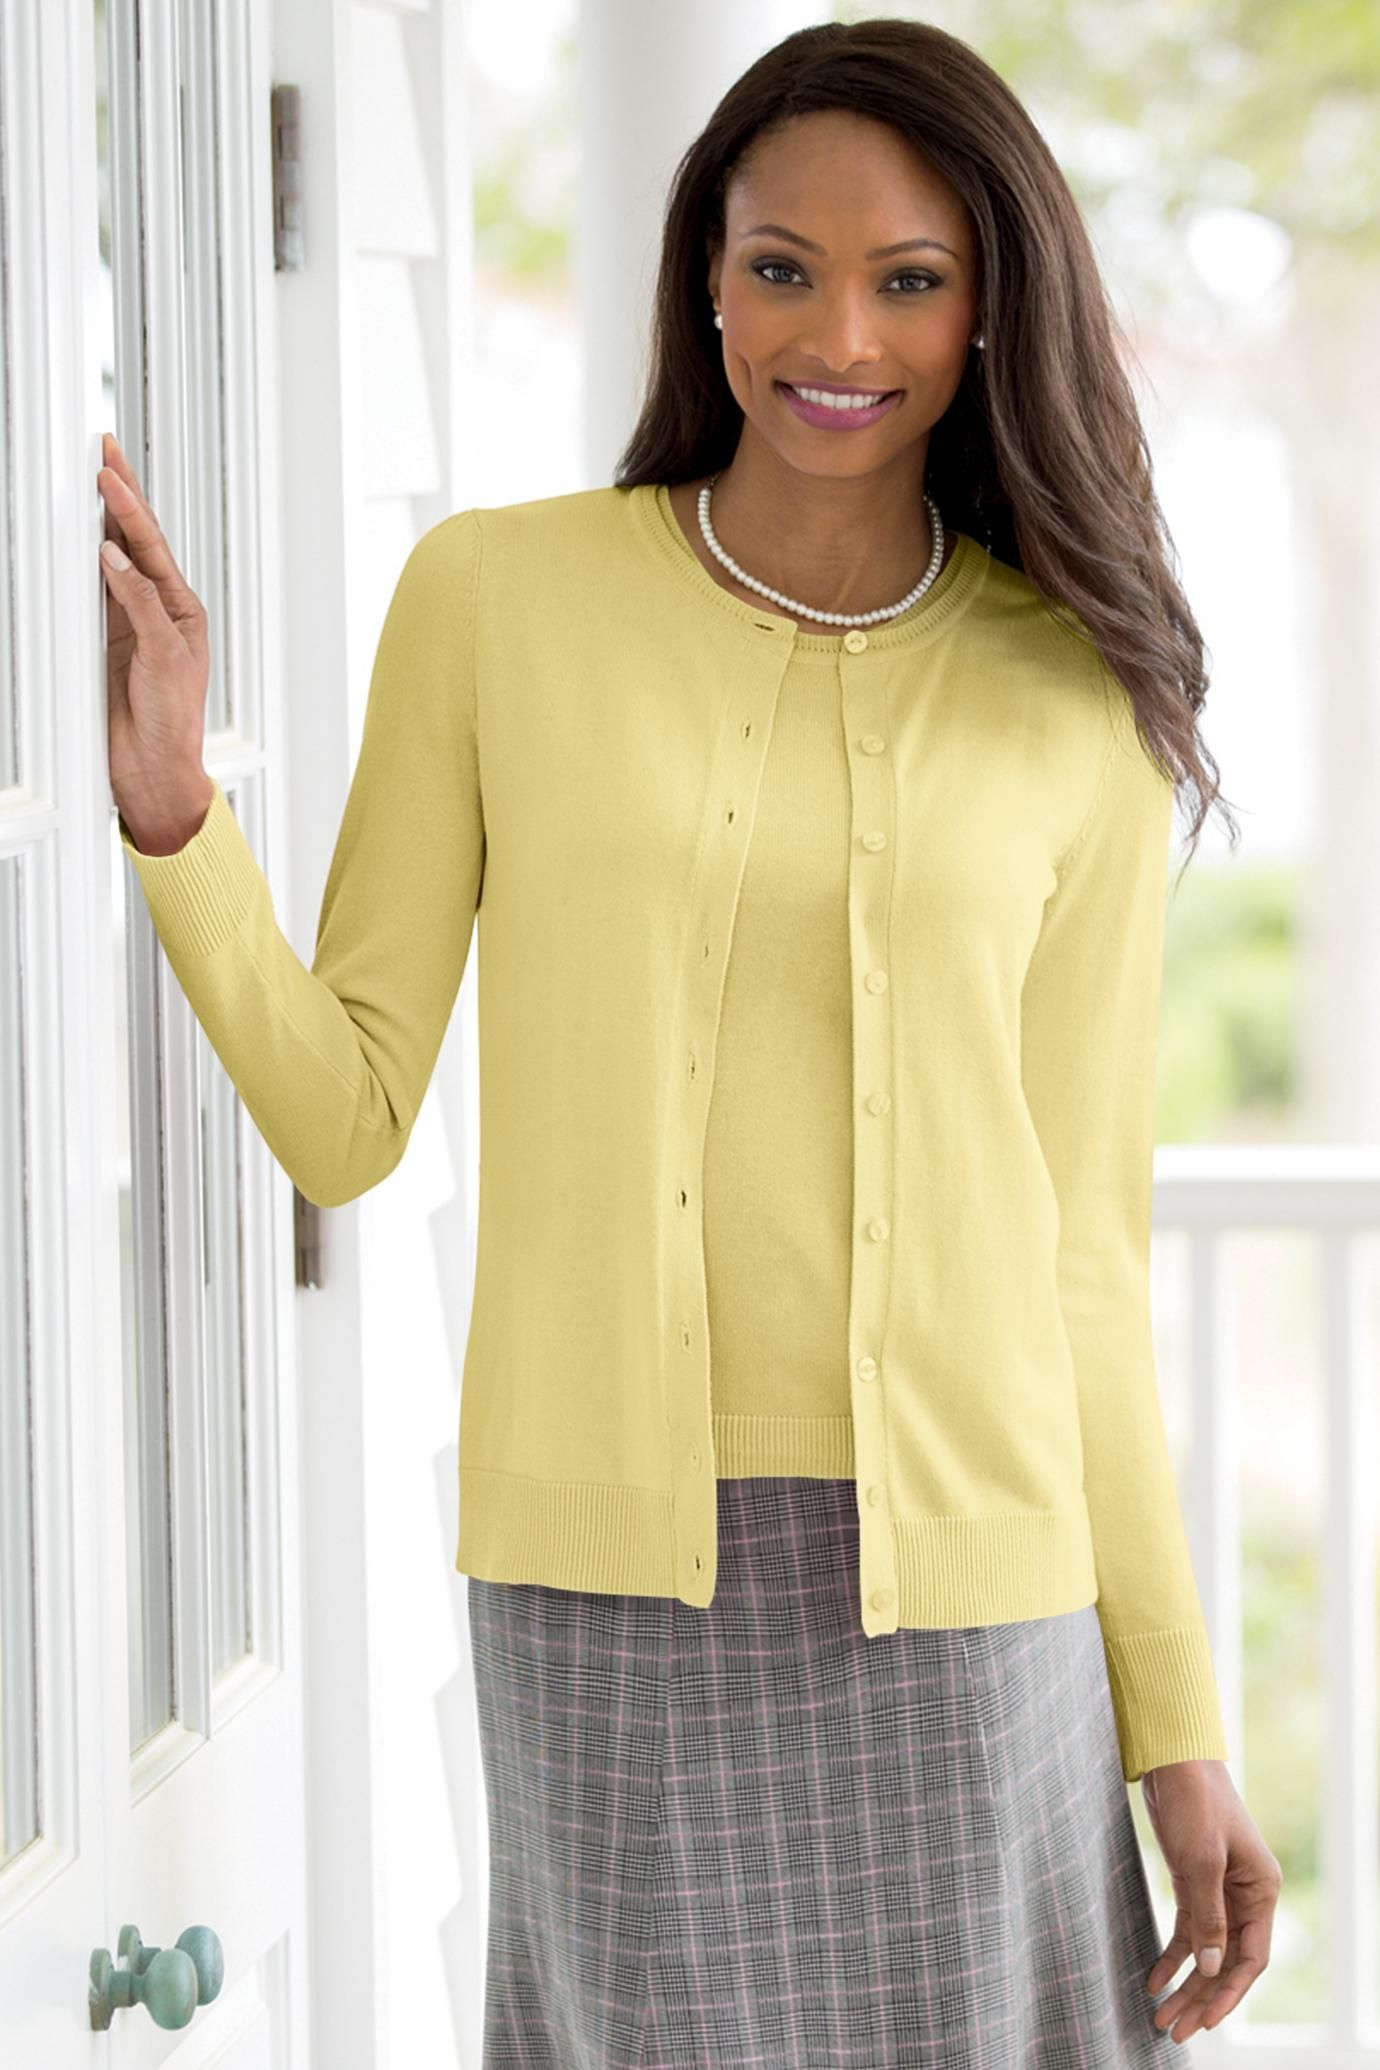 A colorful collection of women's clothing and accessories offering quality and value. Misses, Women's & Petites sizes. Shop tops, bottoms, sweaters, dresses, & jewelry.